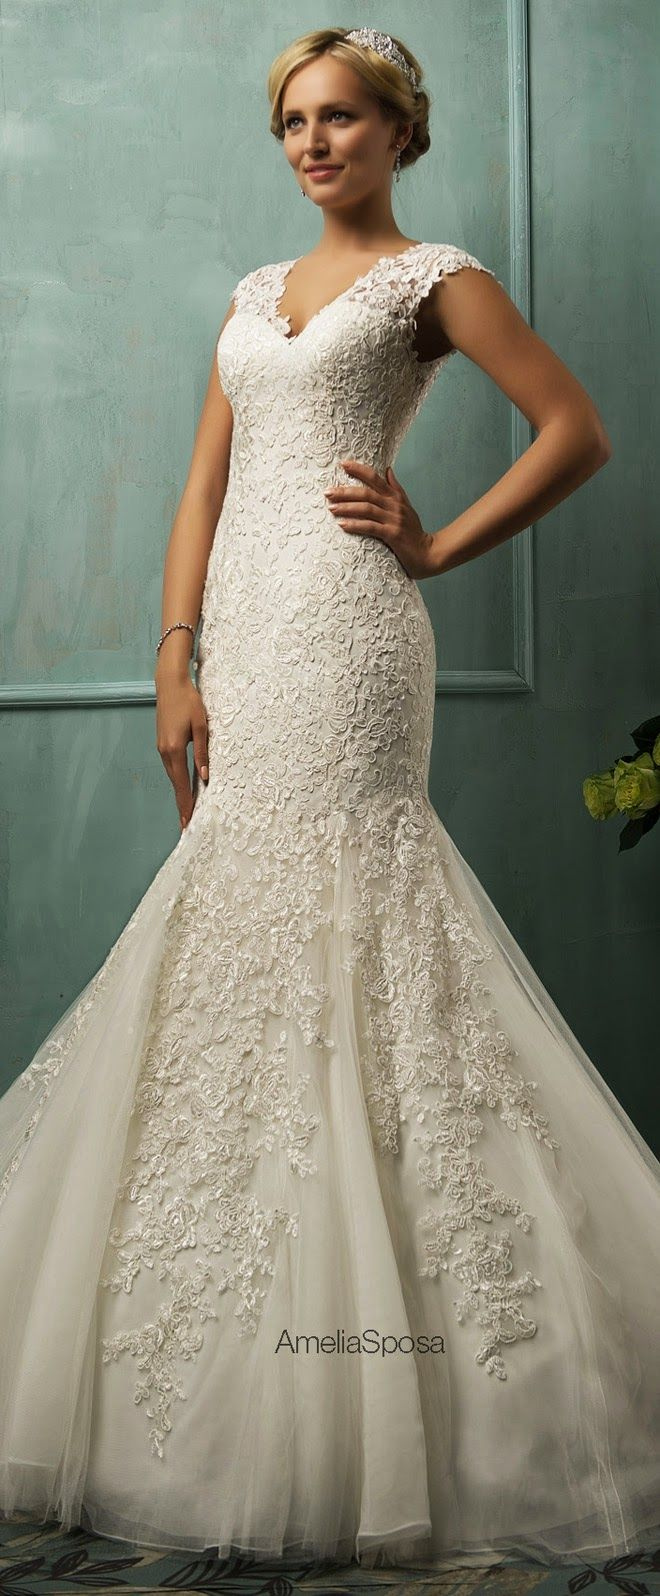 The most flattering wedding dresses amelia sposa amelia and